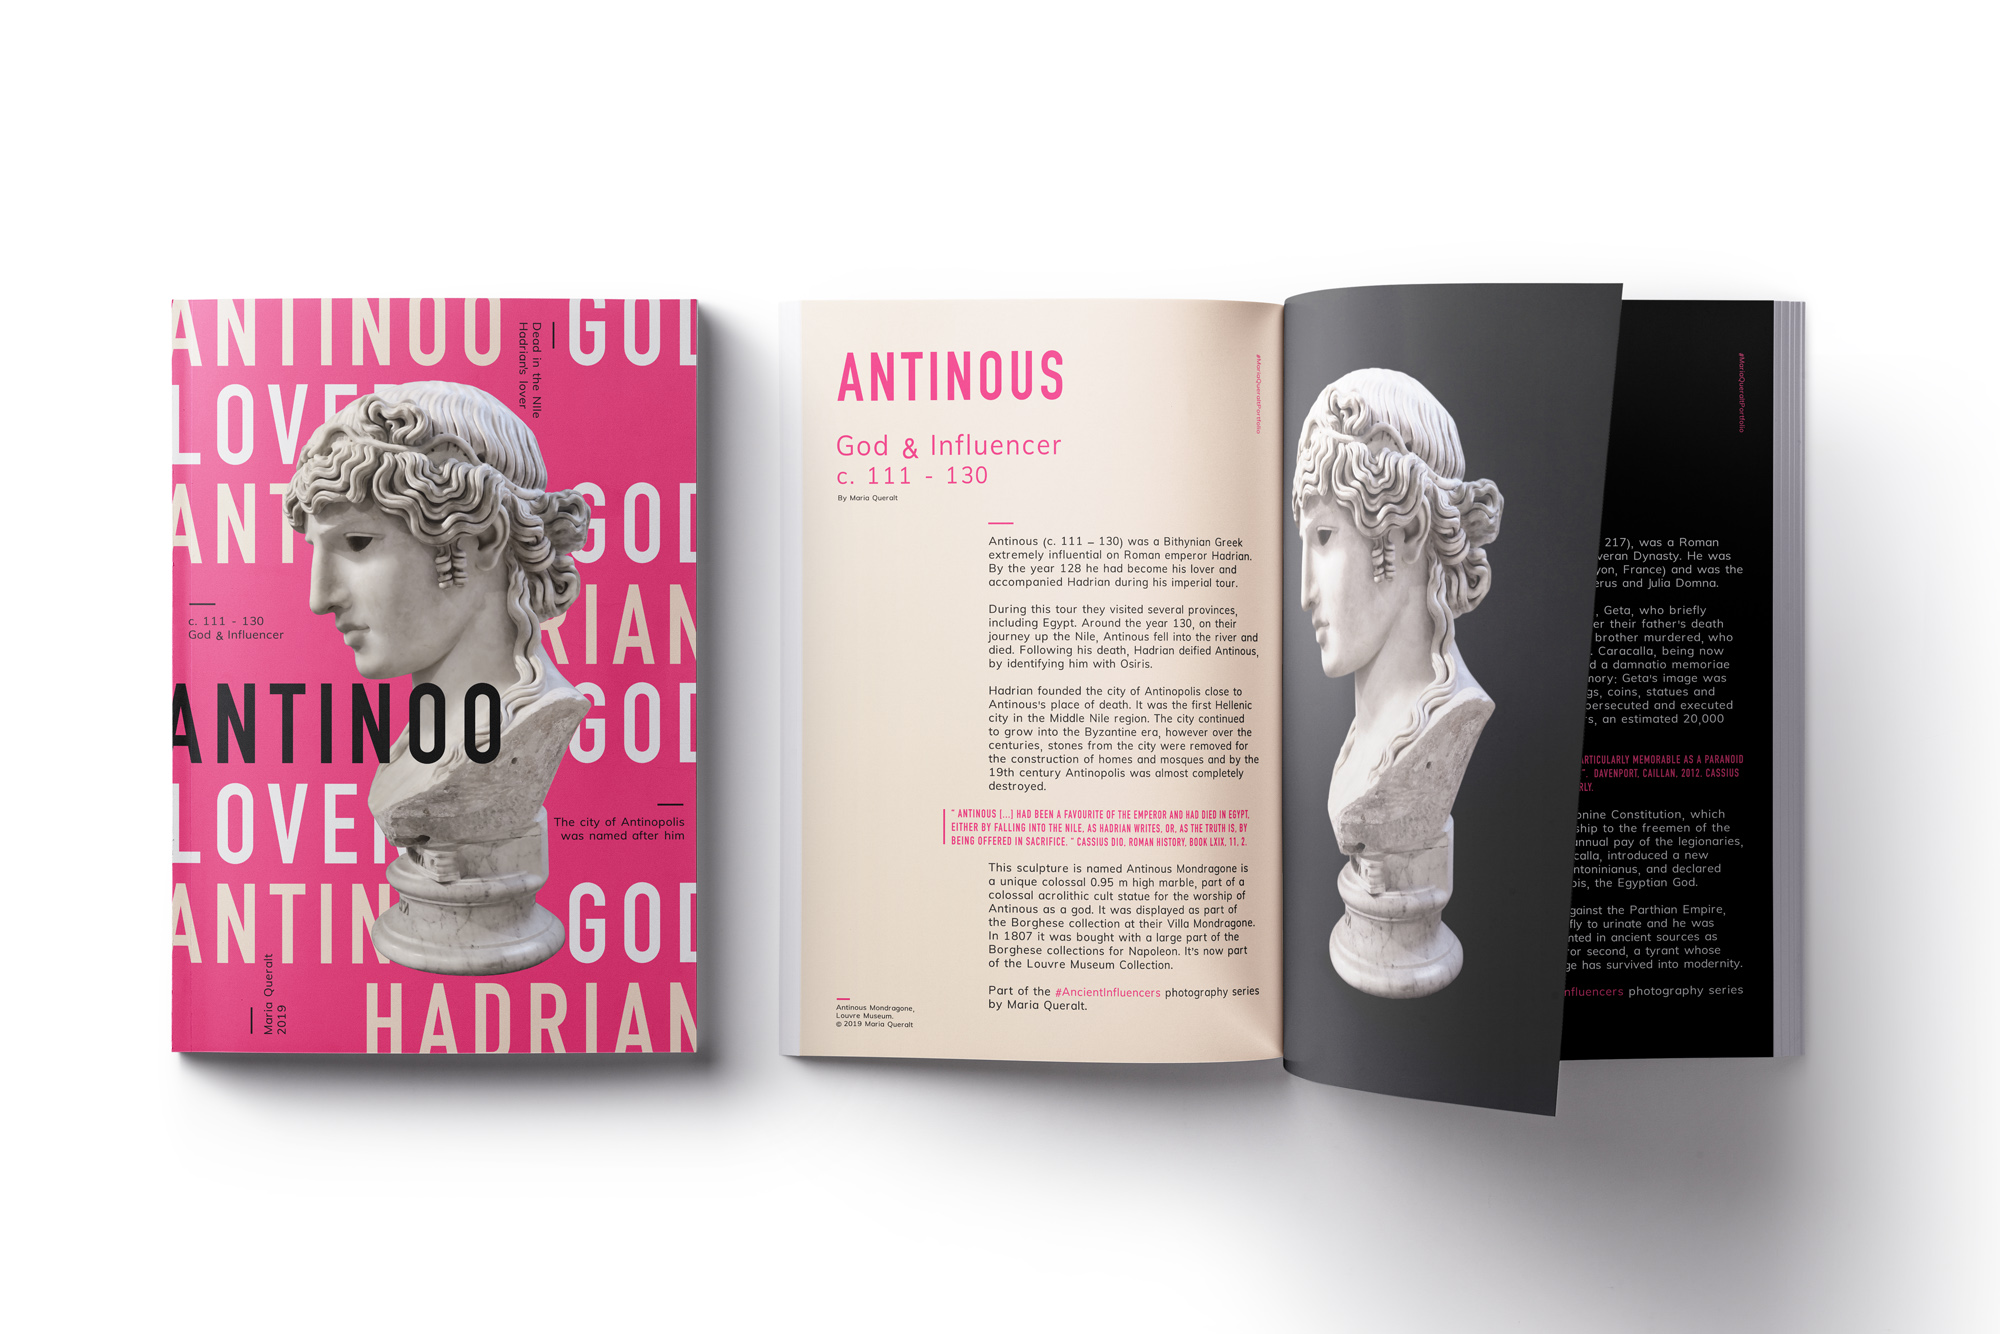 Magazine of Antinous Mondragone, lover of Roman Emperor Hadrian, Louvre Museum, Paris. Part of the Ancient Influencers Photography series by Maria Queralt. Photography and retouche by Maria Queralt